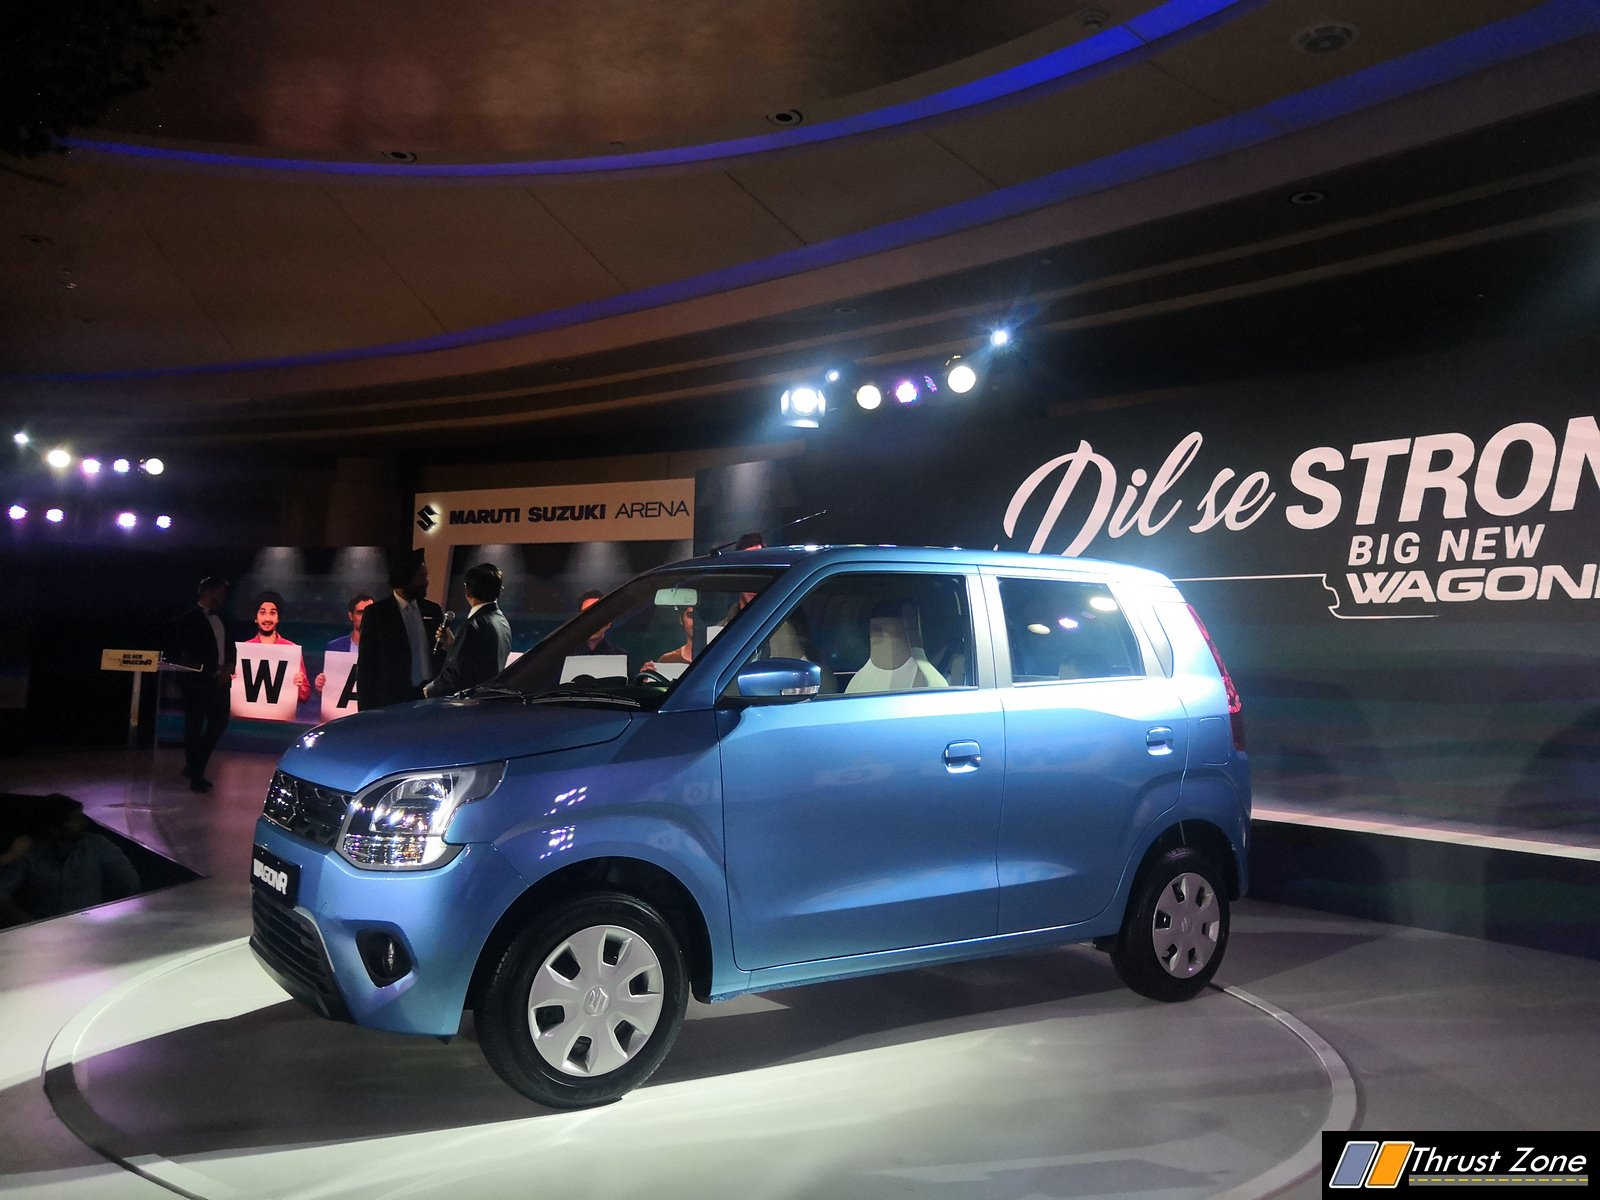 https://www.thrustzone.com/wp-content/uploads/2019/01/Maruti-Wagon-R-India-2019-launch-4.jpg